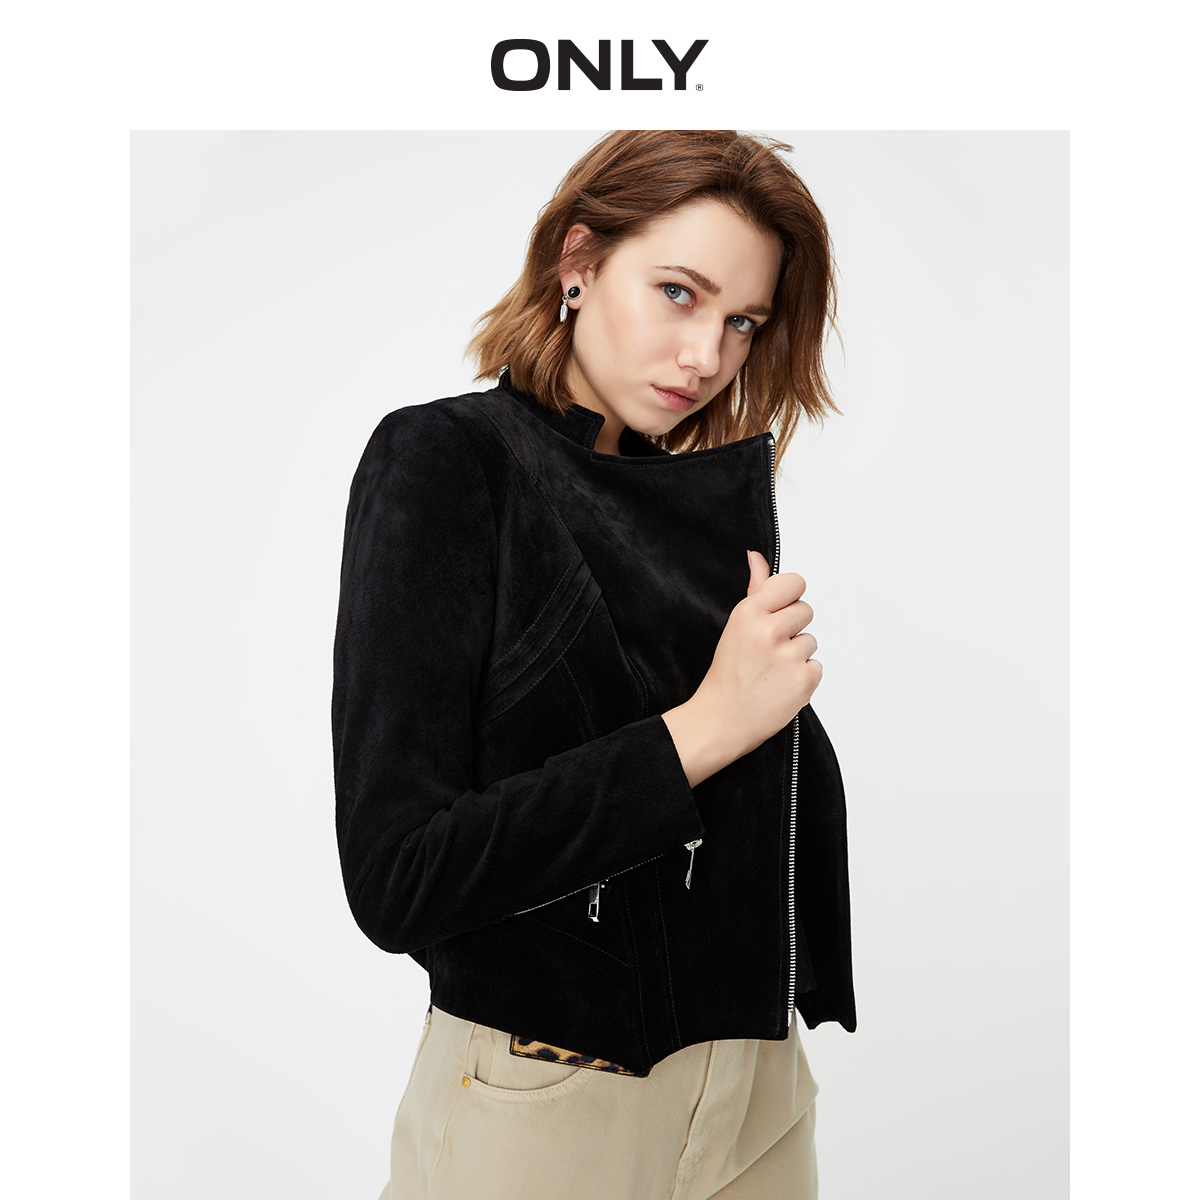 ONLY summer new style fashion temperament Slim lapel suede short leather jacket female 119310528